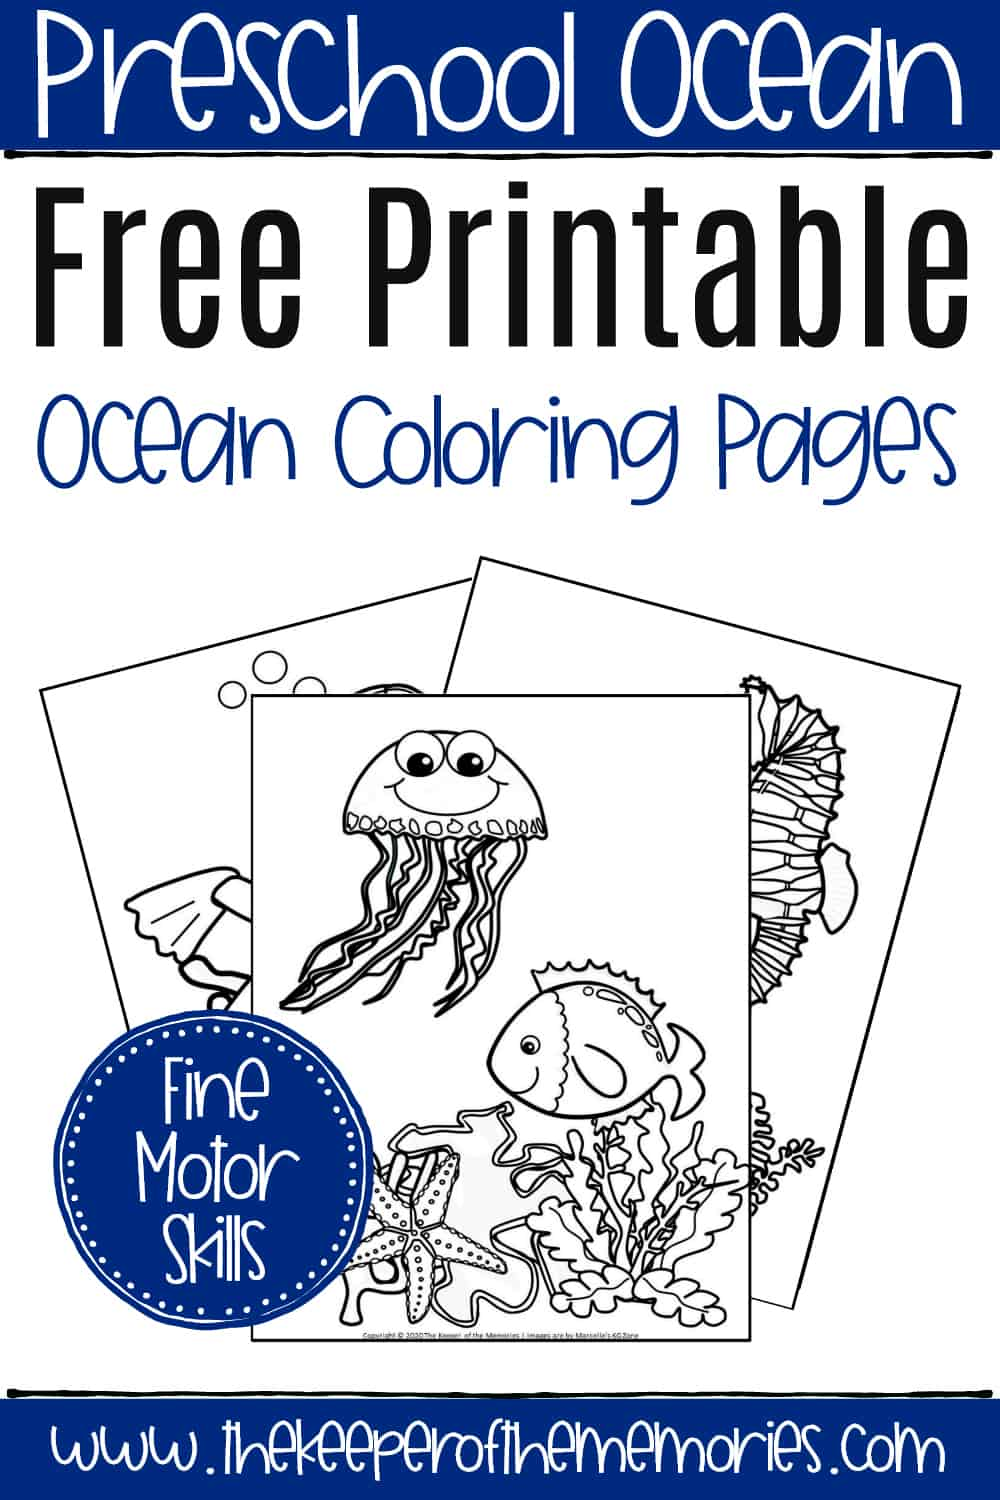 coloring pages : Free Printable Coloringheets And Activities For ... | 1500x1000